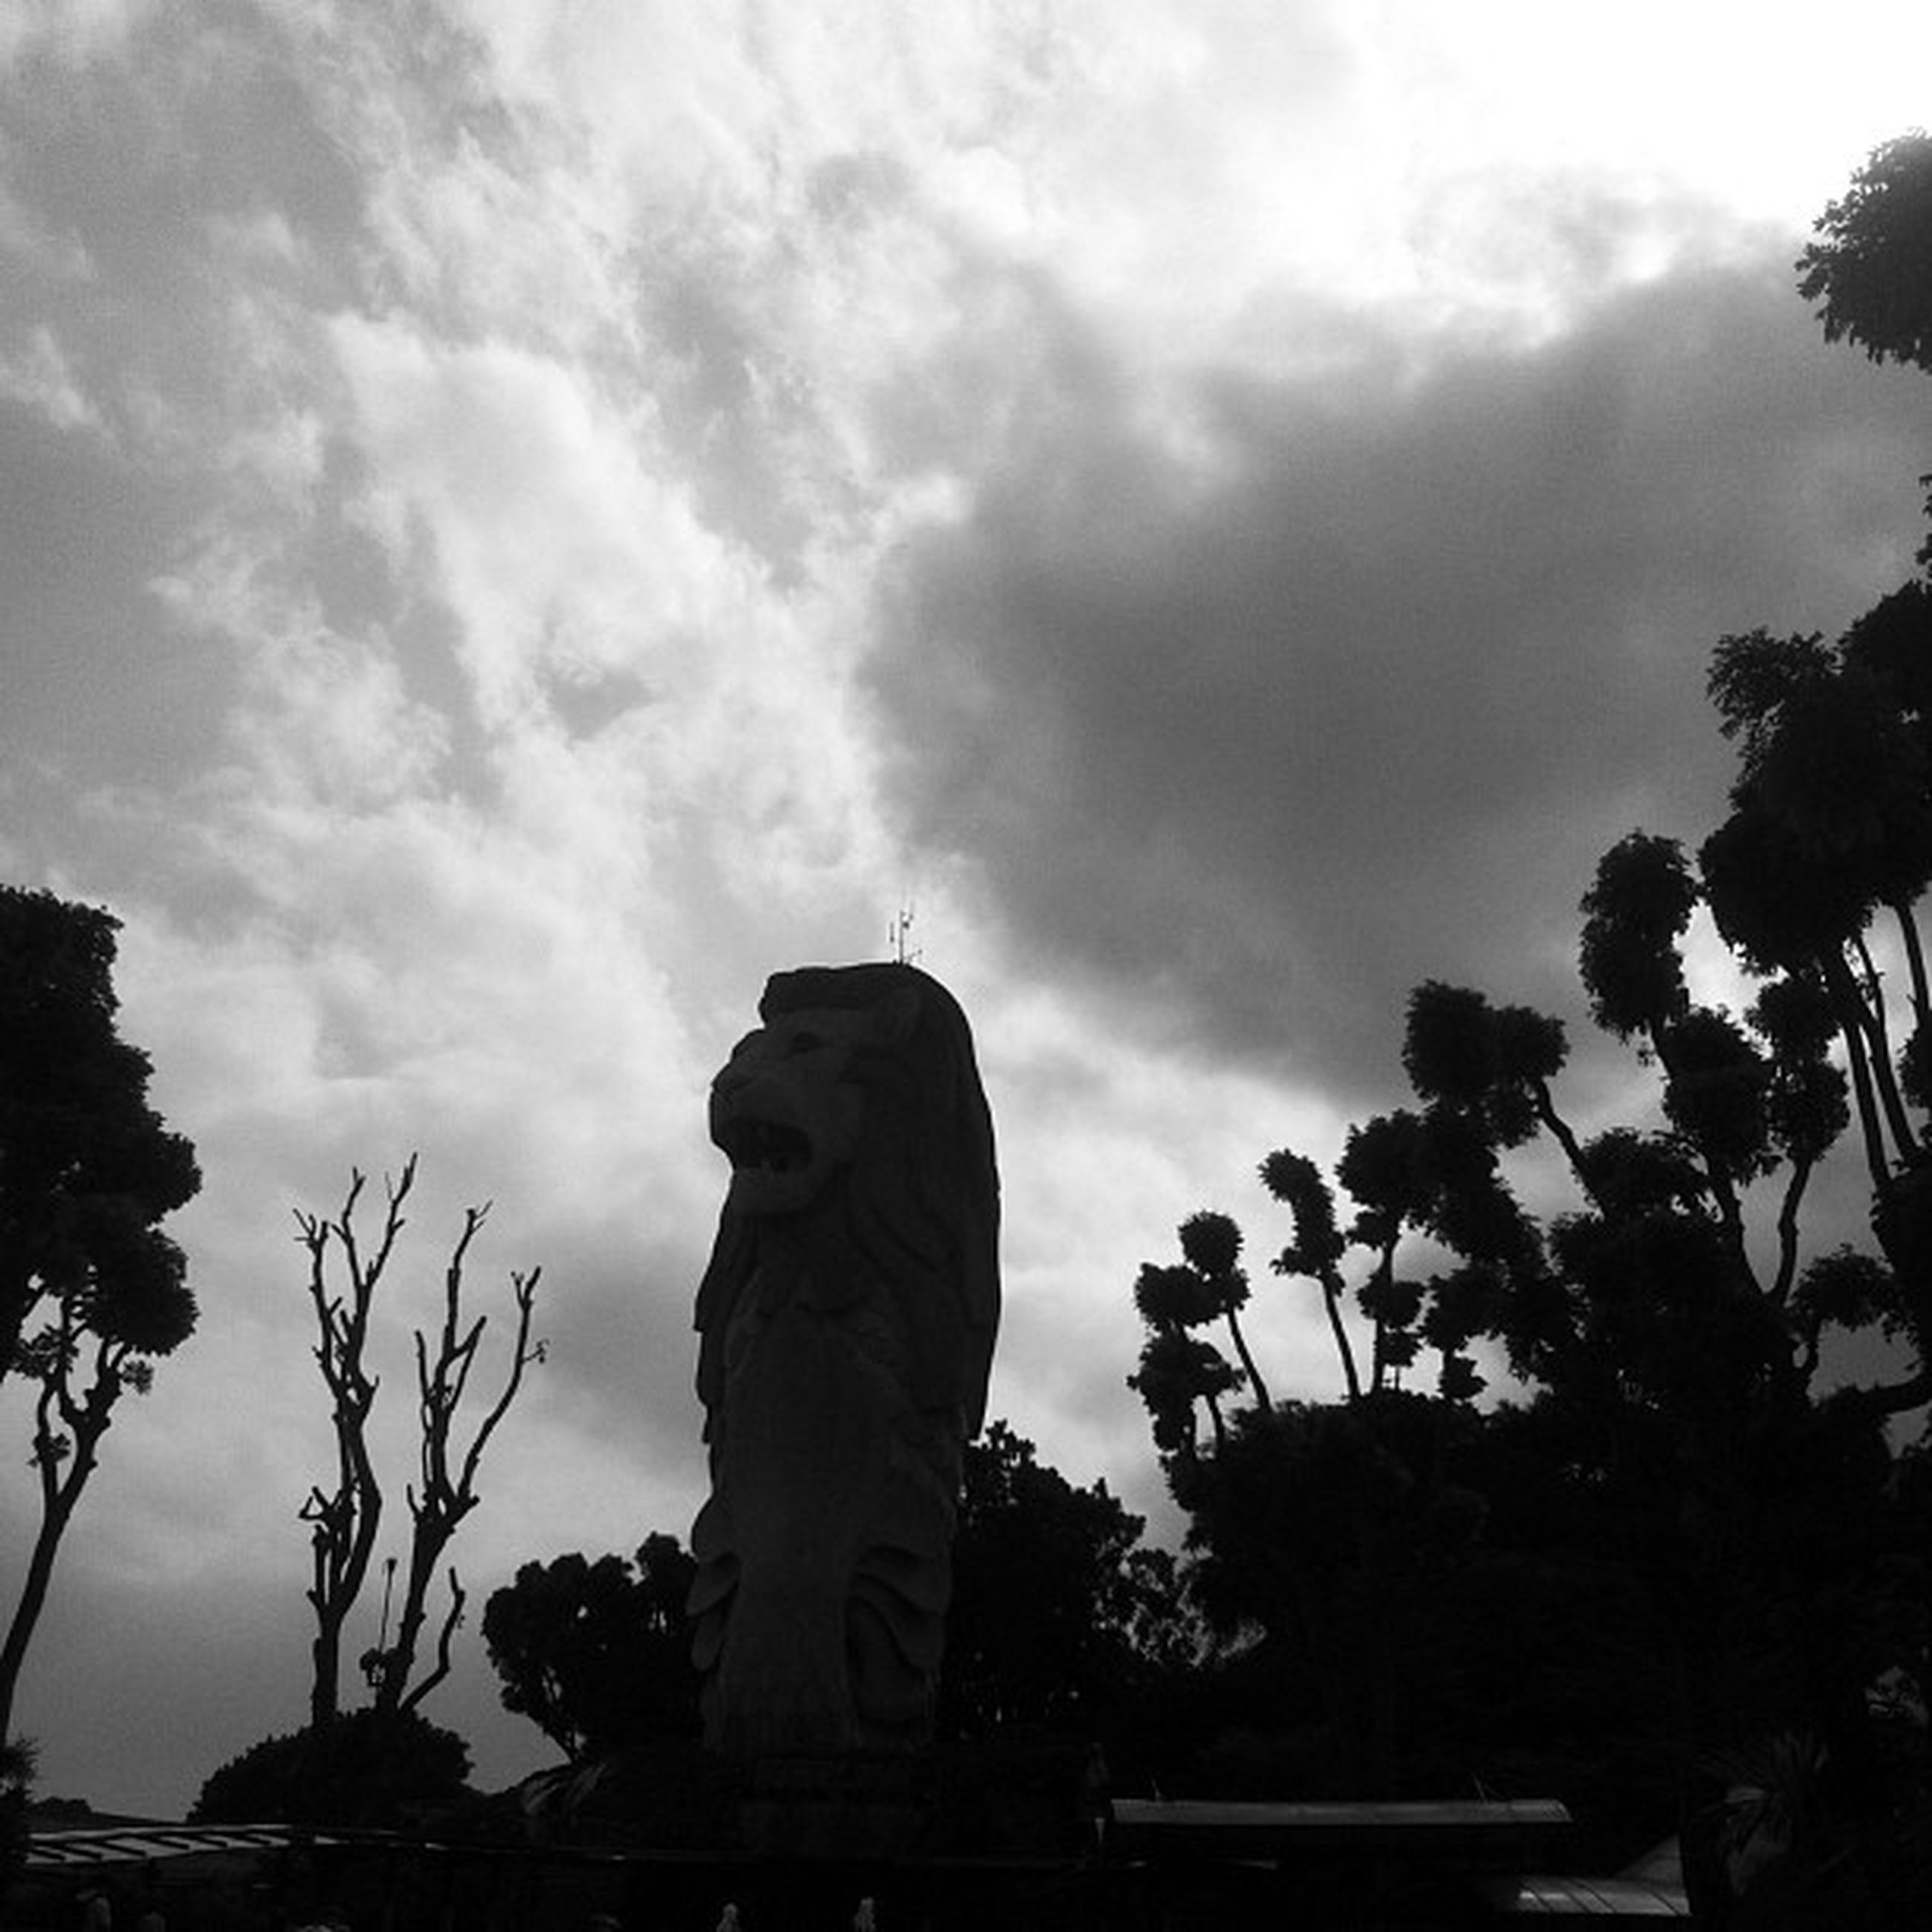 statue, sky, tree, sculpture, human representation, art and craft, art, cloud - sky, creativity, low angle view, silhouette, cloud, cloudy, nature, outdoors, growth, religion, day